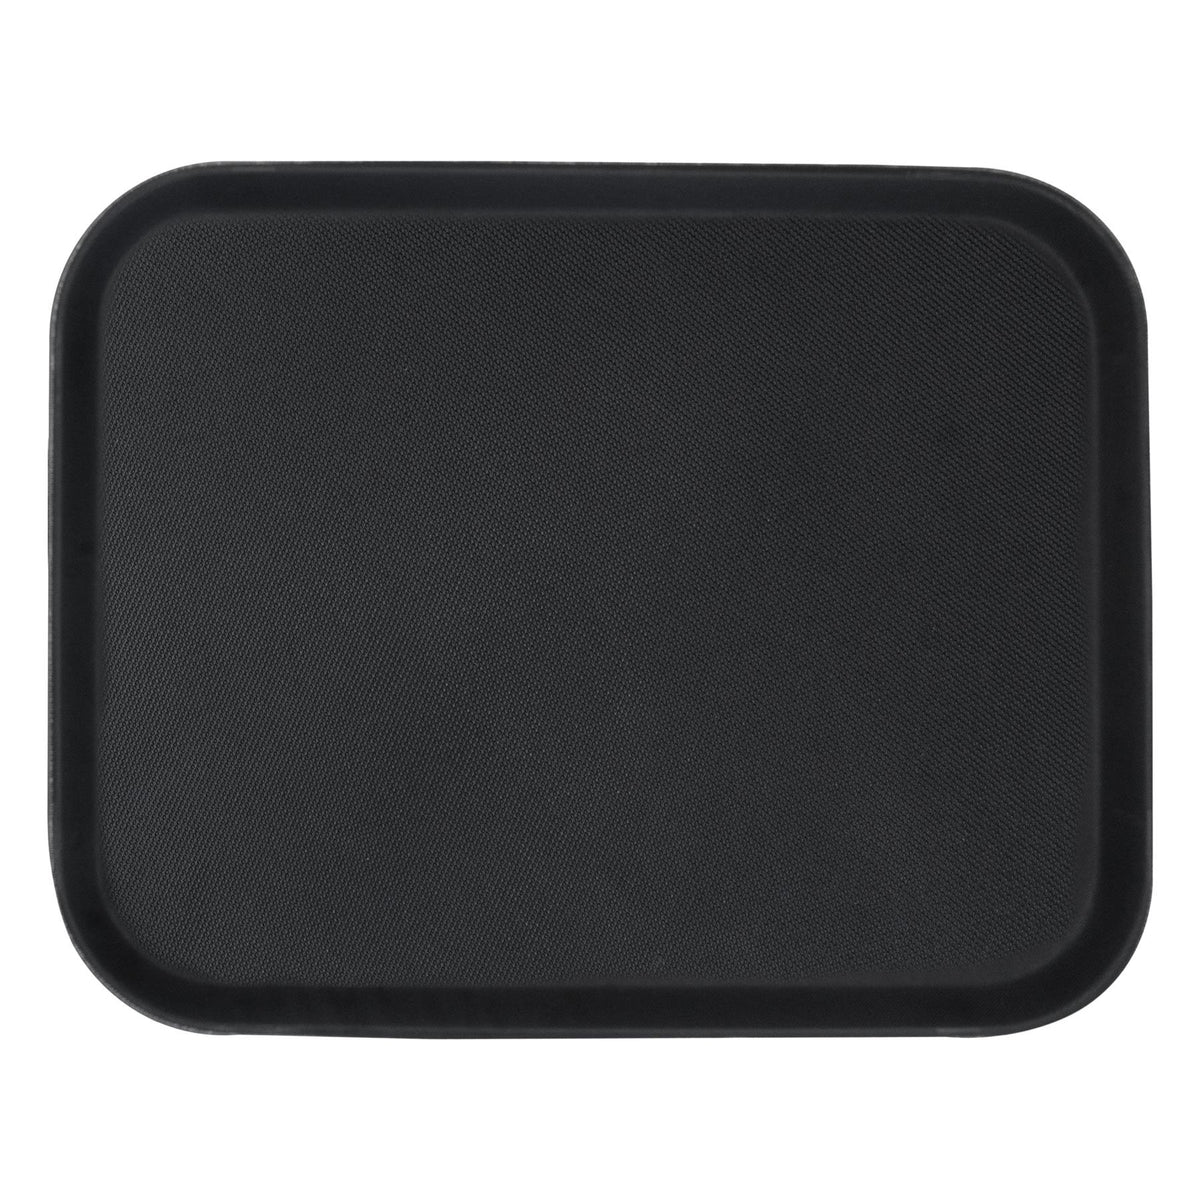 Argon Tableware Rectangular Non-Slip Serving Tray - 35 x 45cm